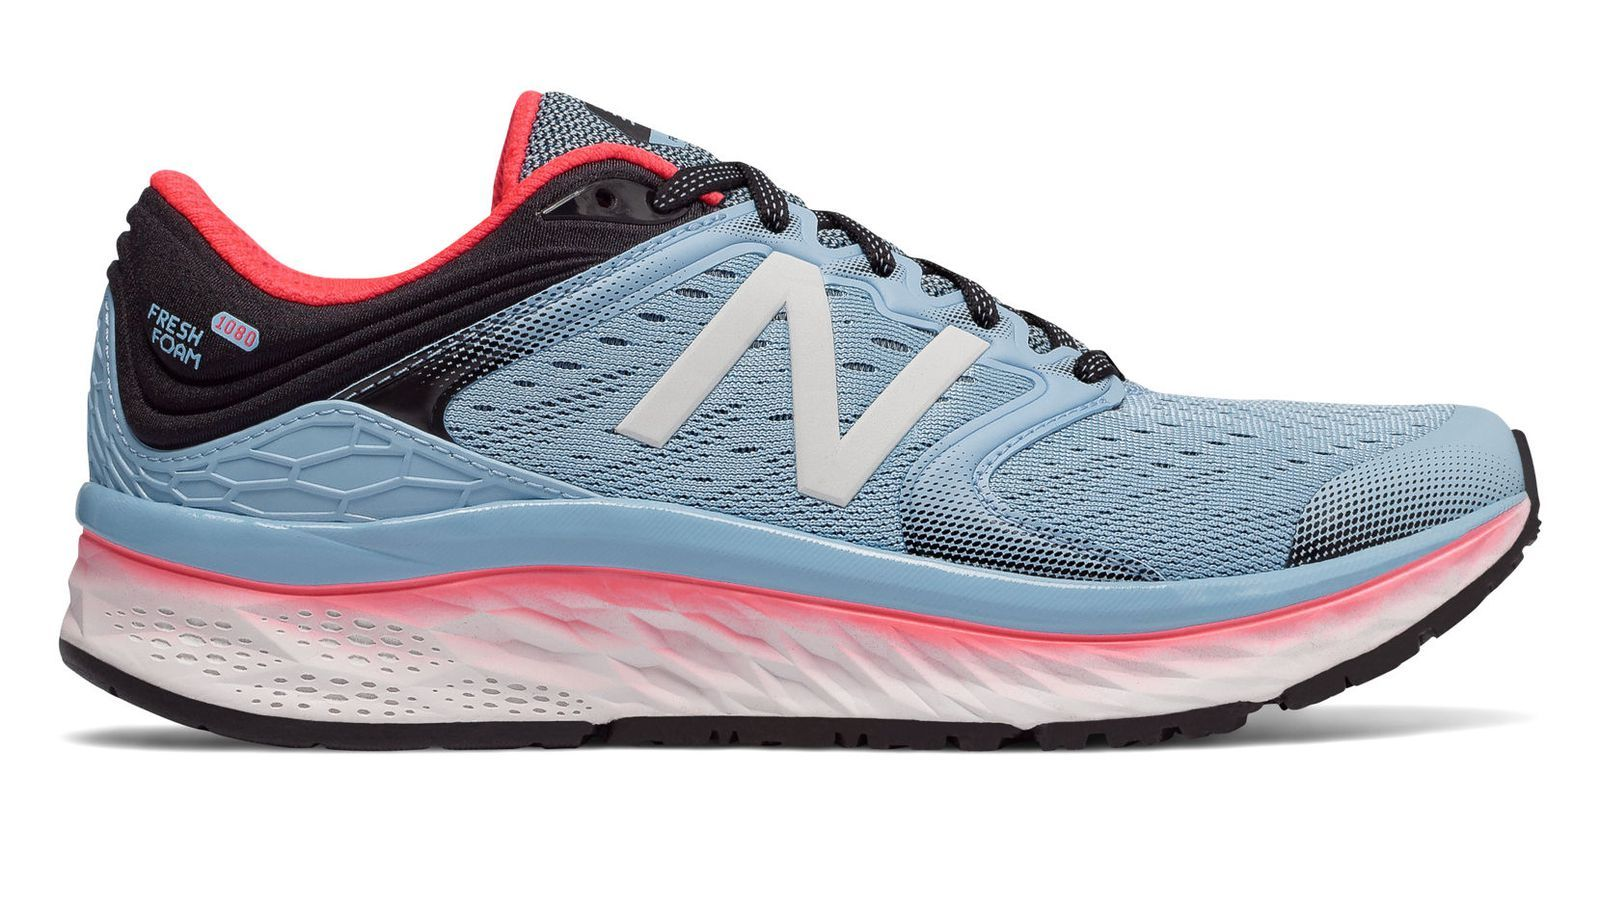 Currículum Seguro ambición  The 10 Best New Balance Running Shoes | Running shoes, Best running shoes,  Womens running shoes